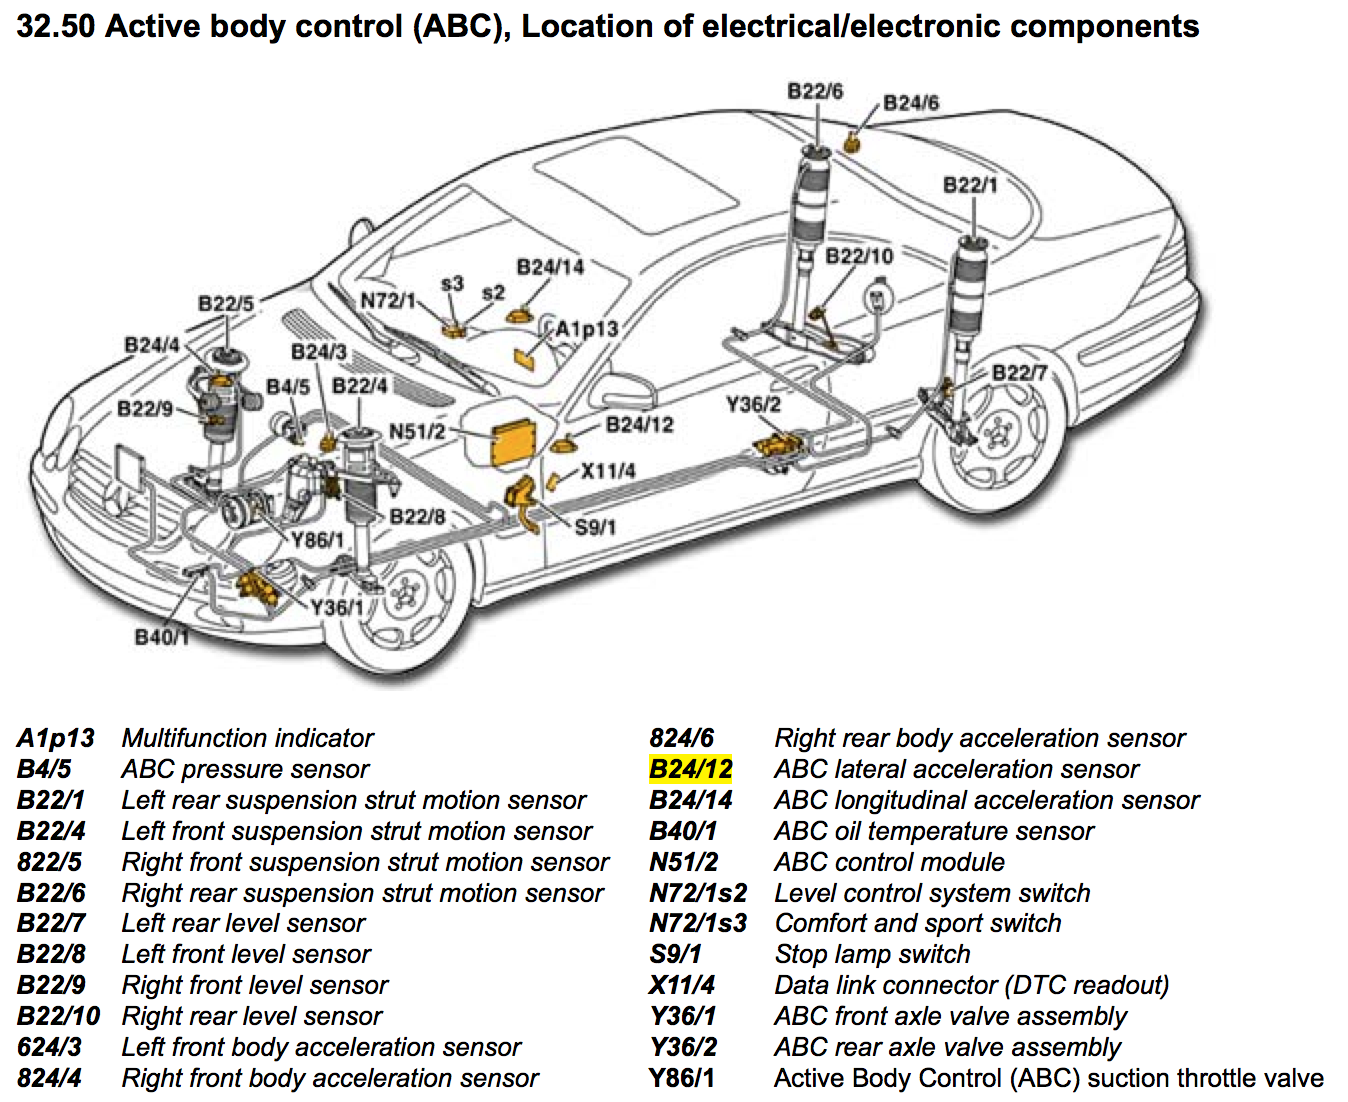 mercedes benz abc system troubleshooting guide  august 2014